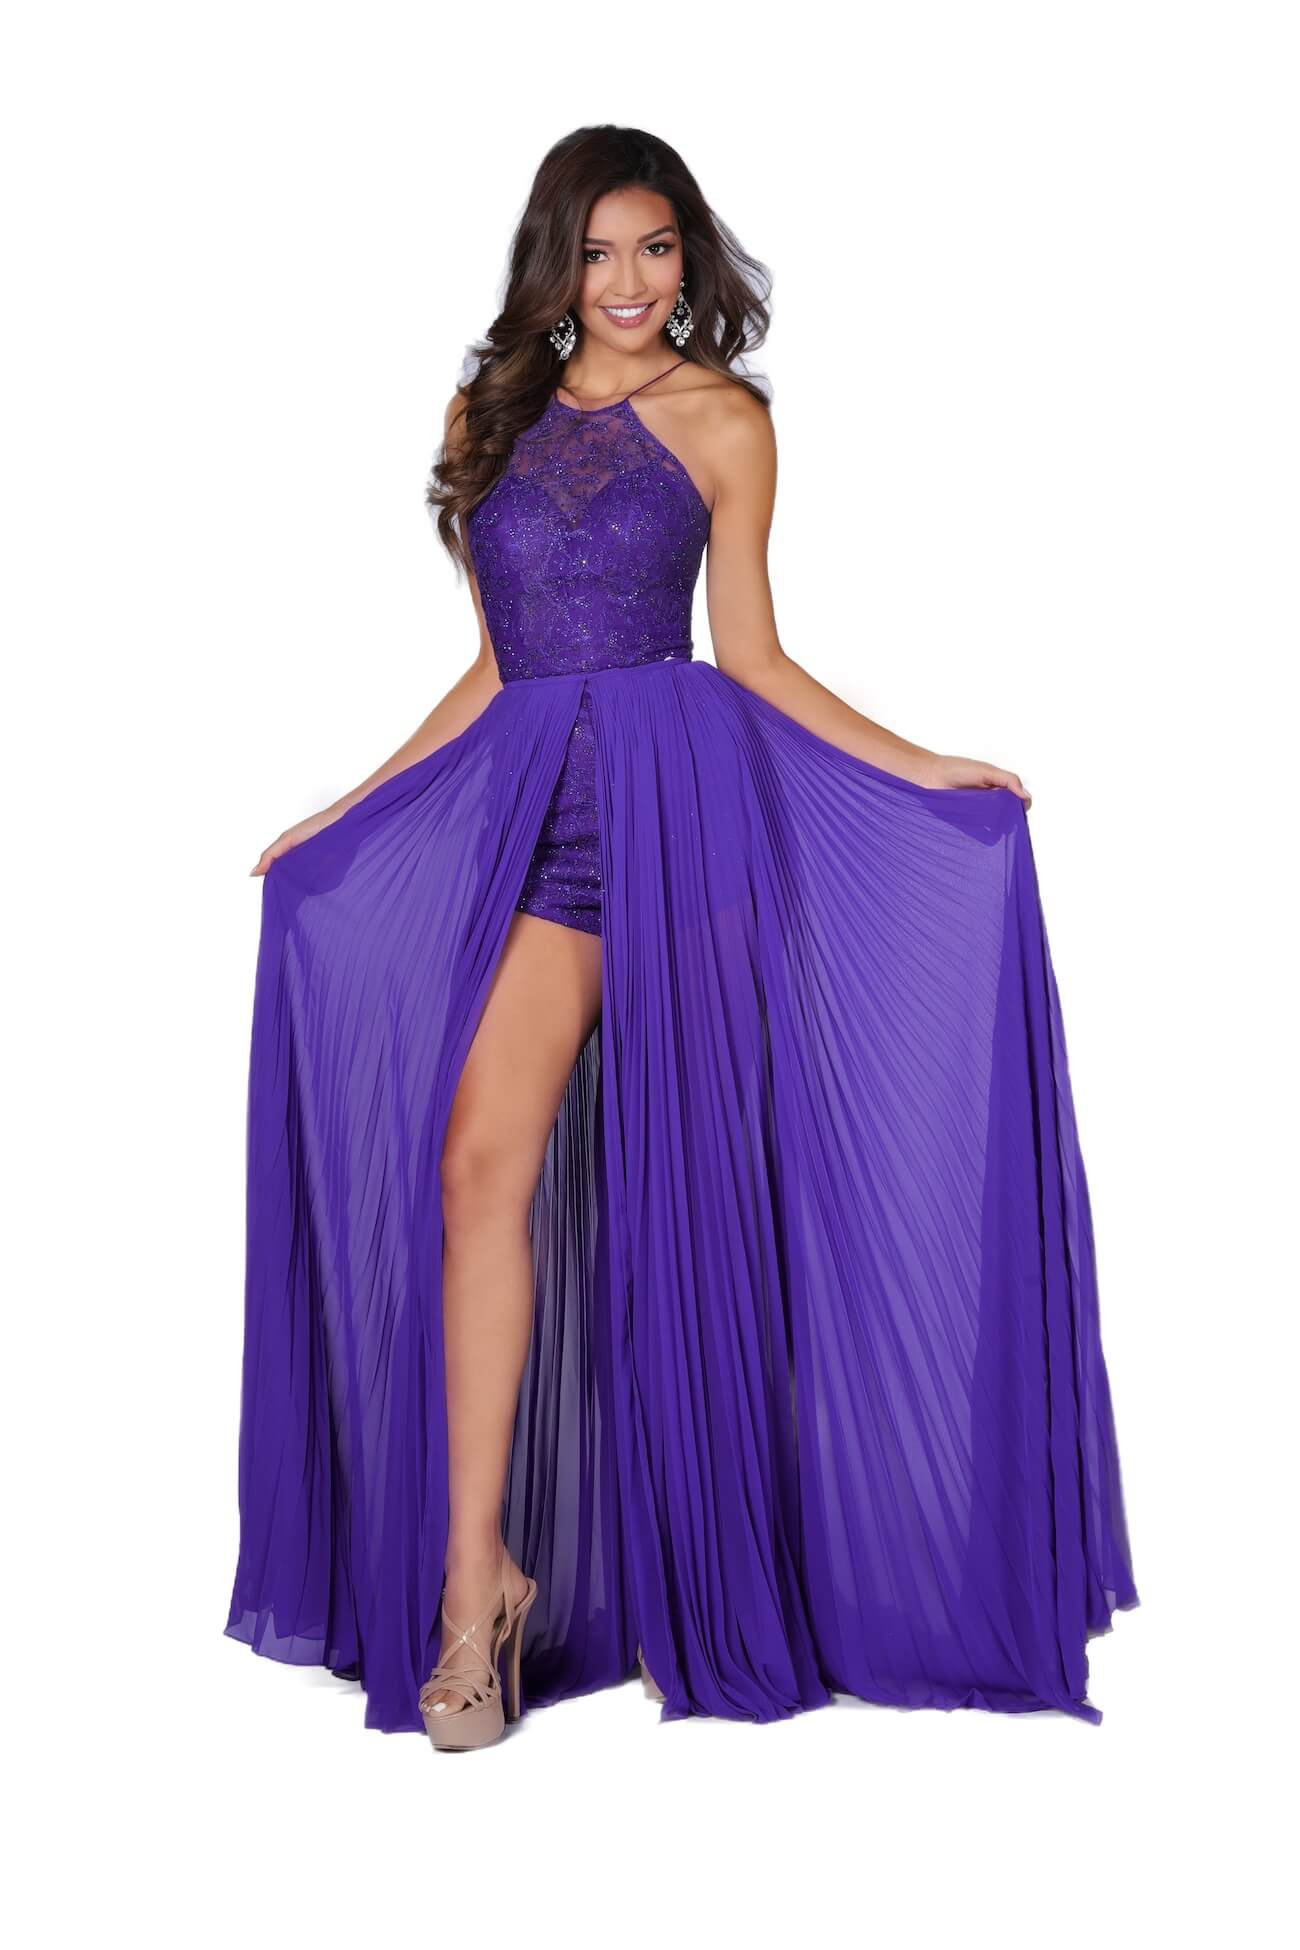 Vienna Purple Size 8 Tall Height Overskirt Romper/Jumpsuit Dress on Queenly